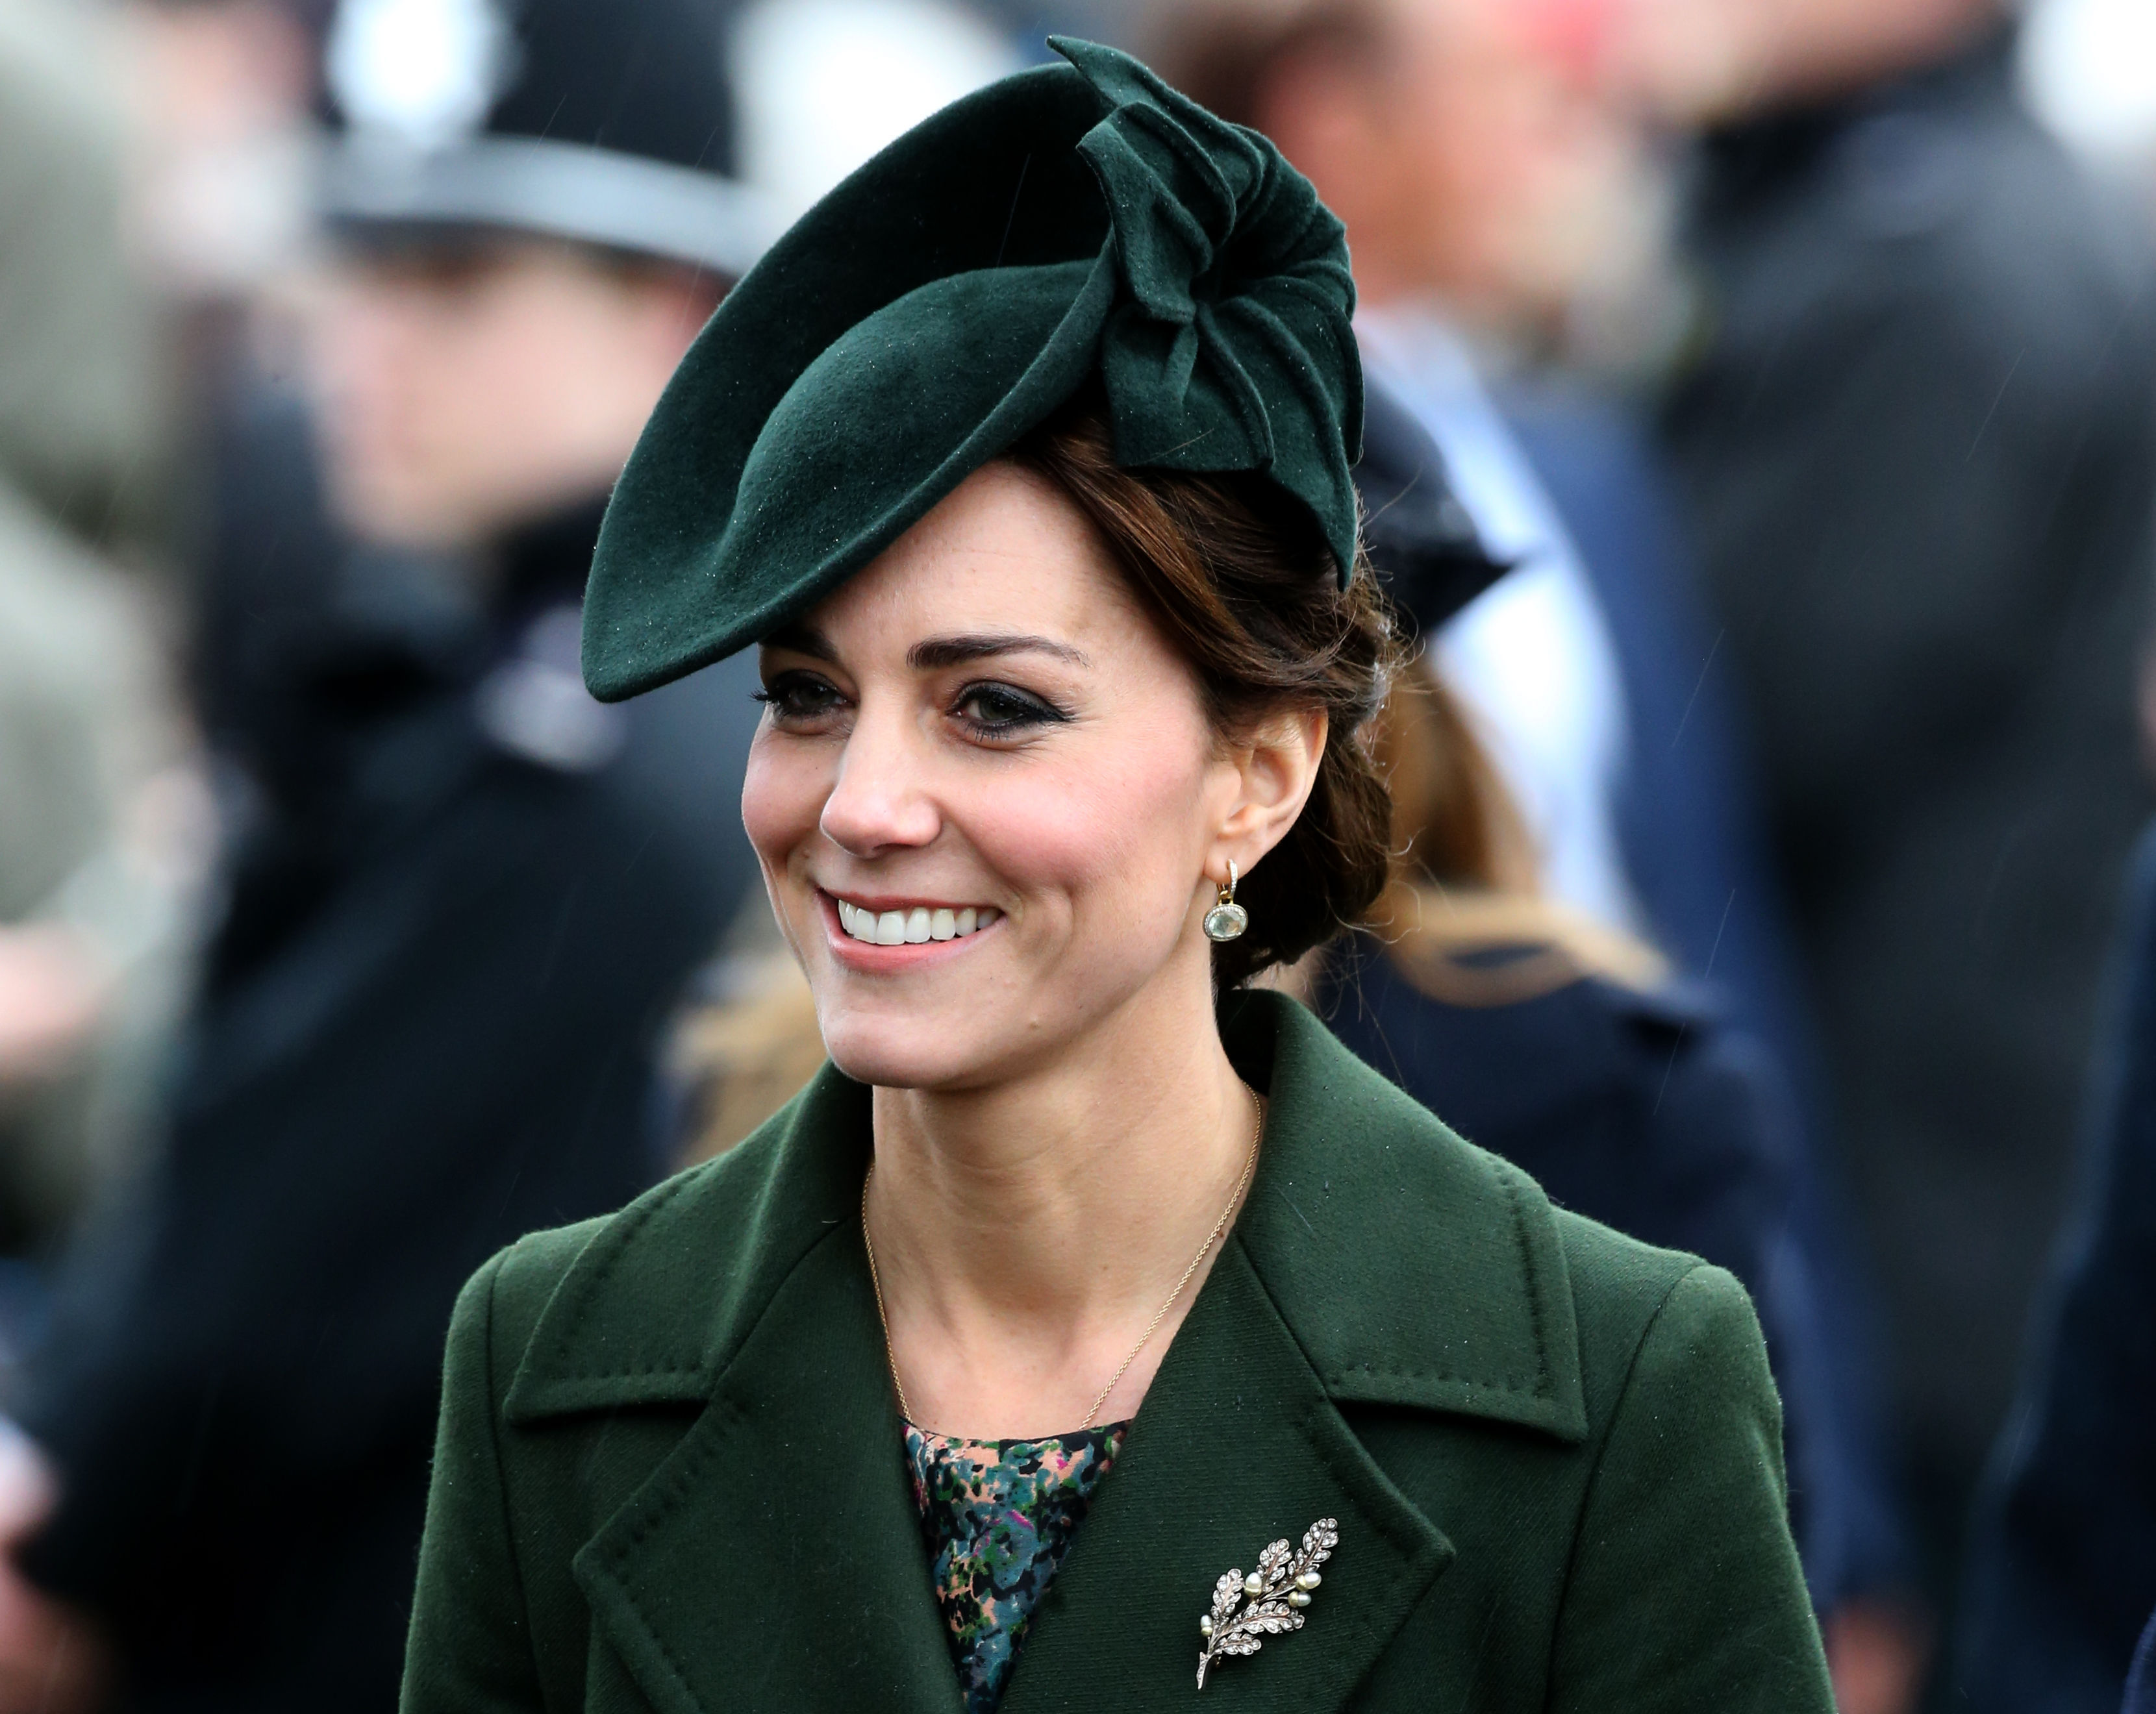 middleton jewish personals Kate middleton's younger sister is marrying hedge fund manager and chief executive of eden rock capital management group james matthews on saturday - here's what we know about him.